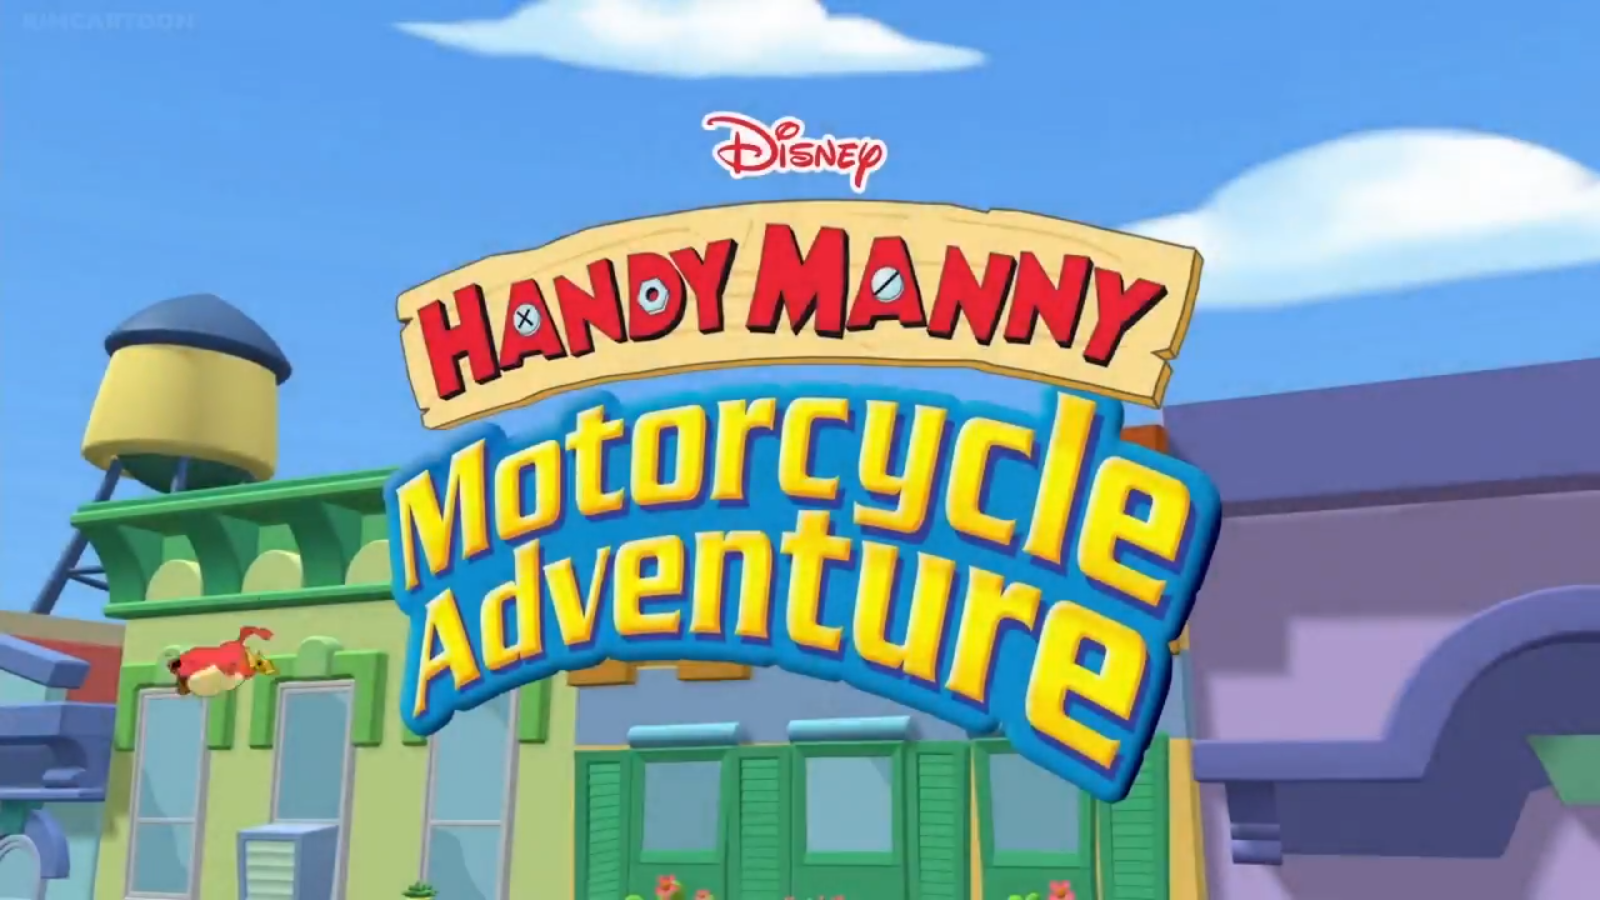 Handy Manny's Motorcycle Adventure